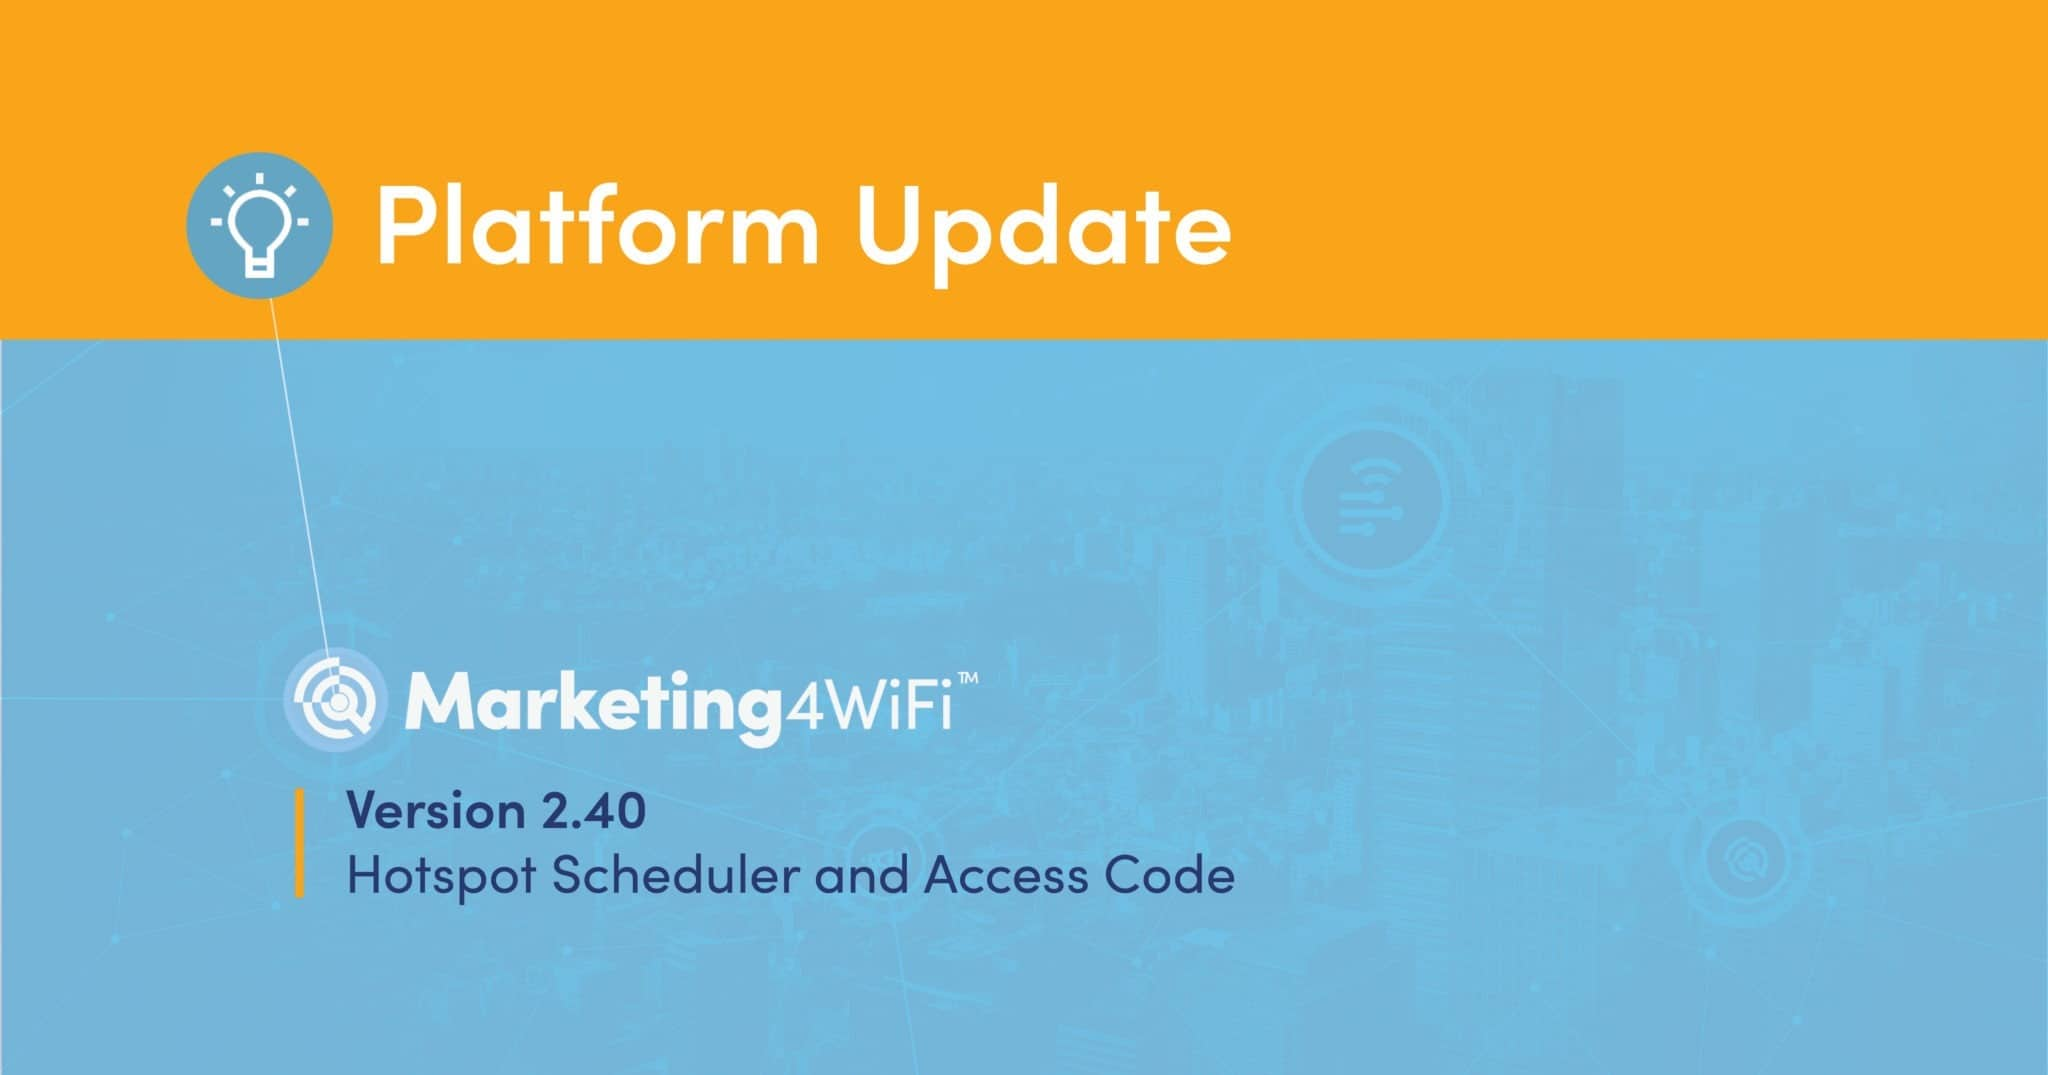 GoZone WiFi Introduces Hotspot Scheduler and Access Code featured image